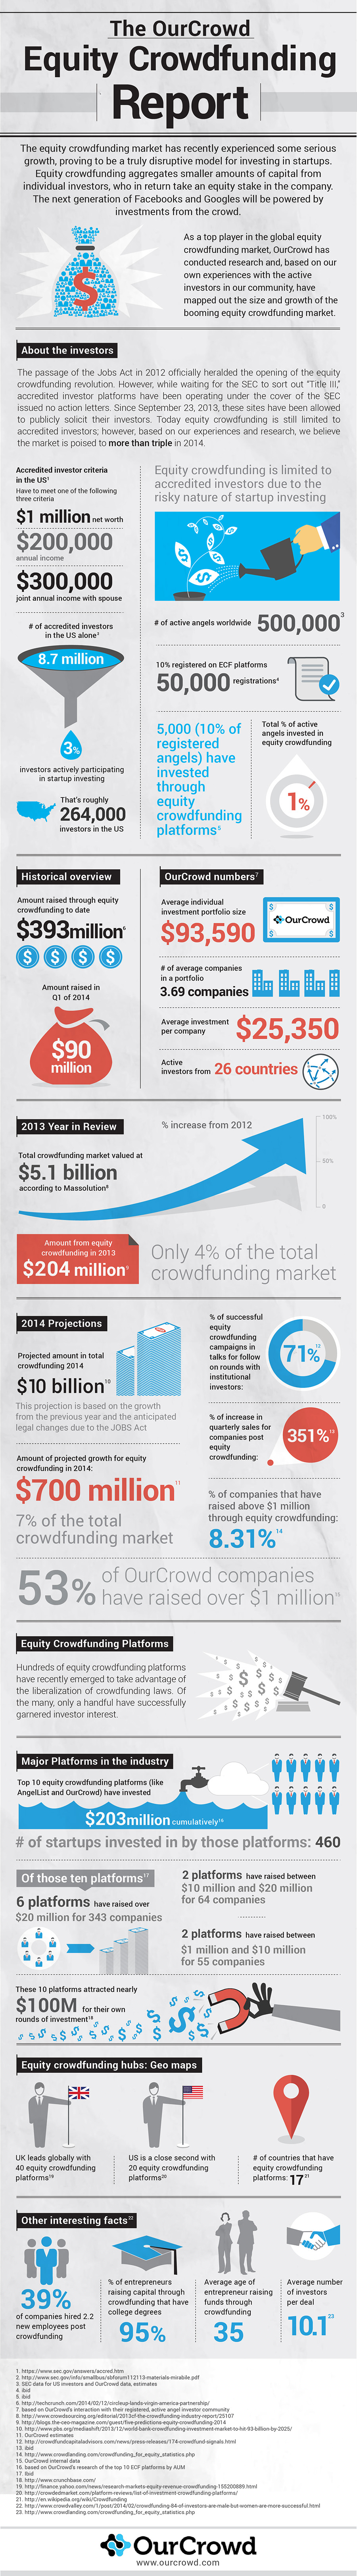 Equity Crowdfunding Facts